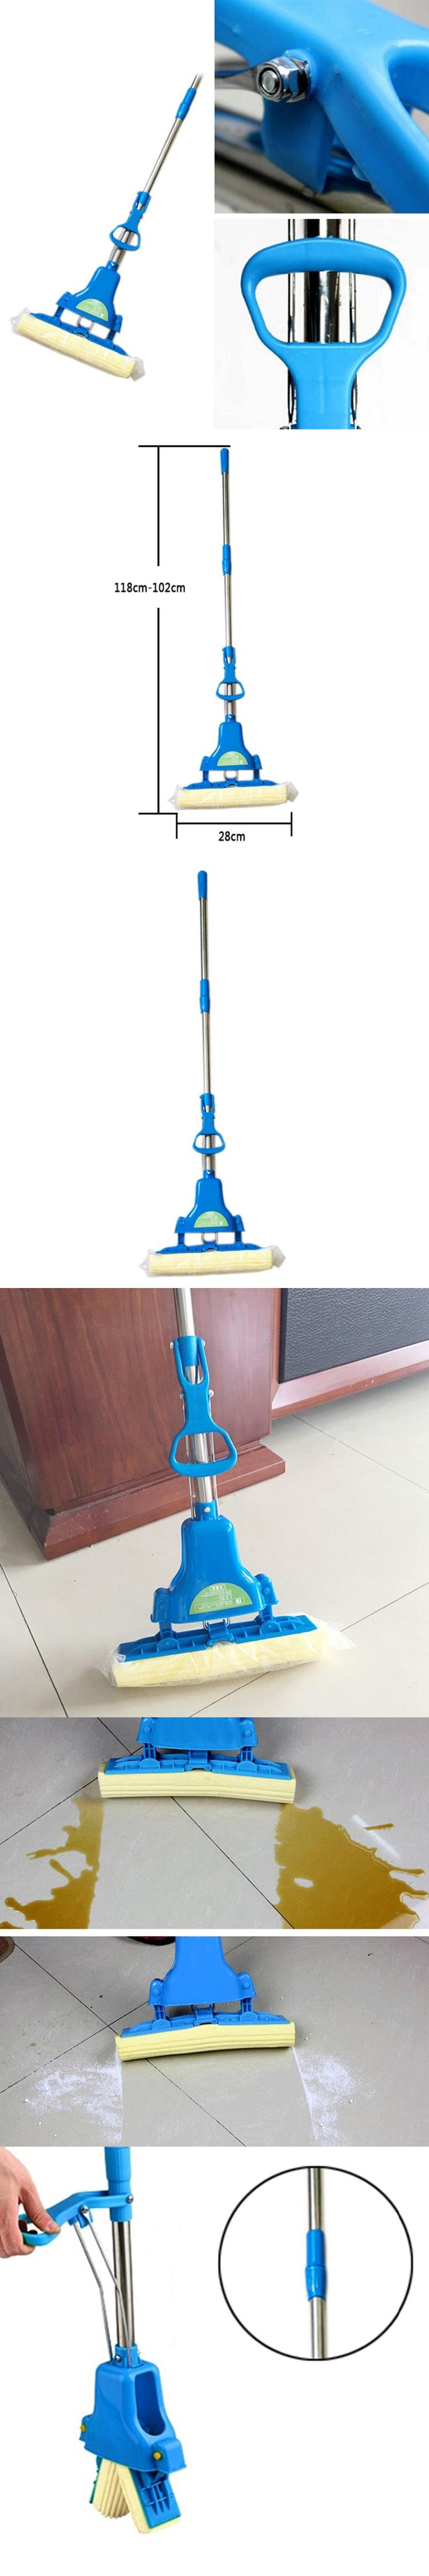 Cleaning Brush Sponge Mops Floor Cleaning Mop Folding Absorbing Squeeze Water Magic Mop Household Cleaning Tools Brush